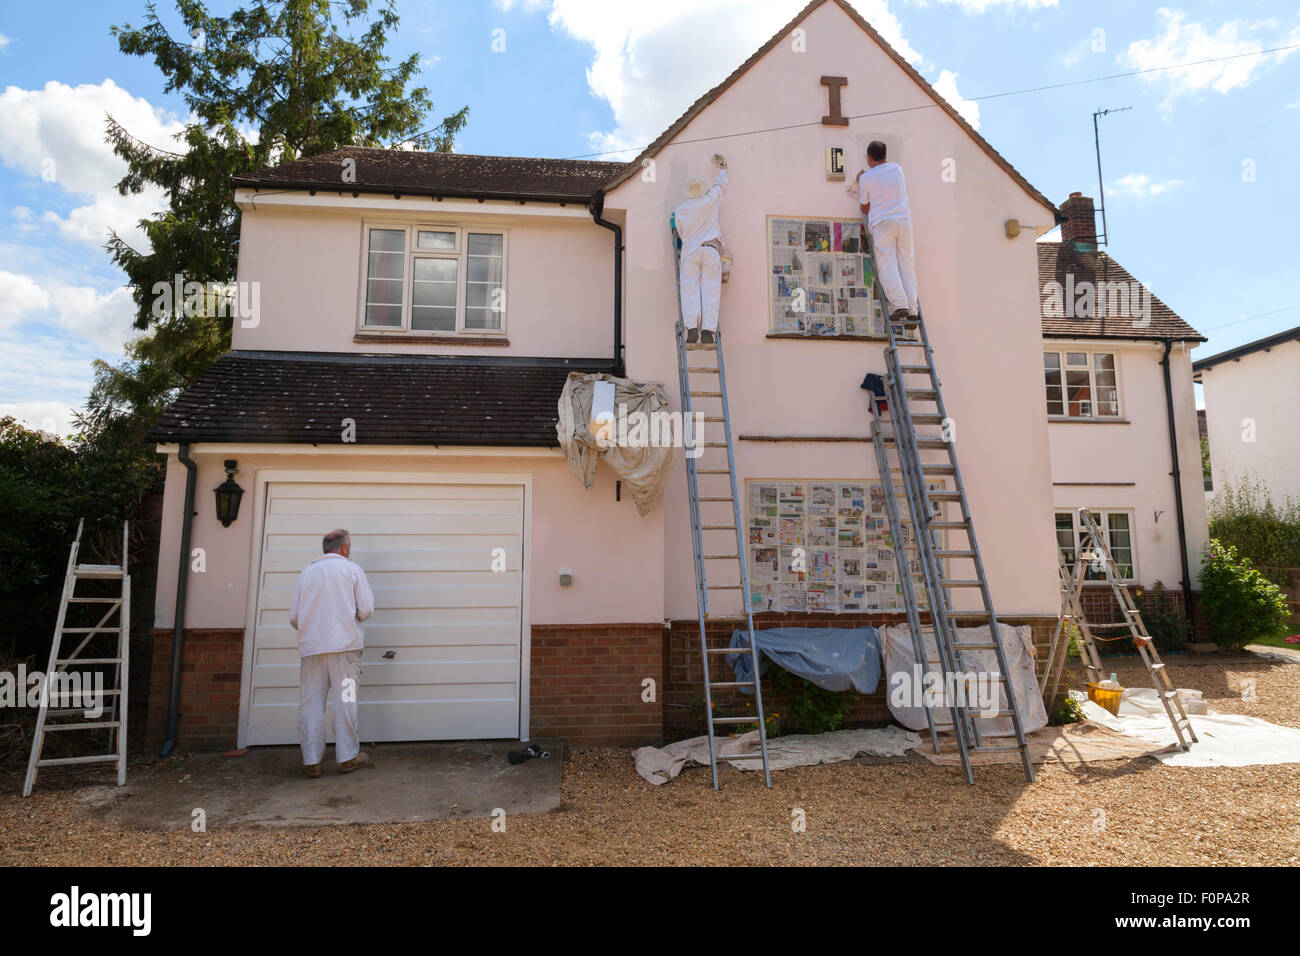 Nice Professional House Painters Painting The Exterior Of A House, Suffolk, East  Anglia, England UK